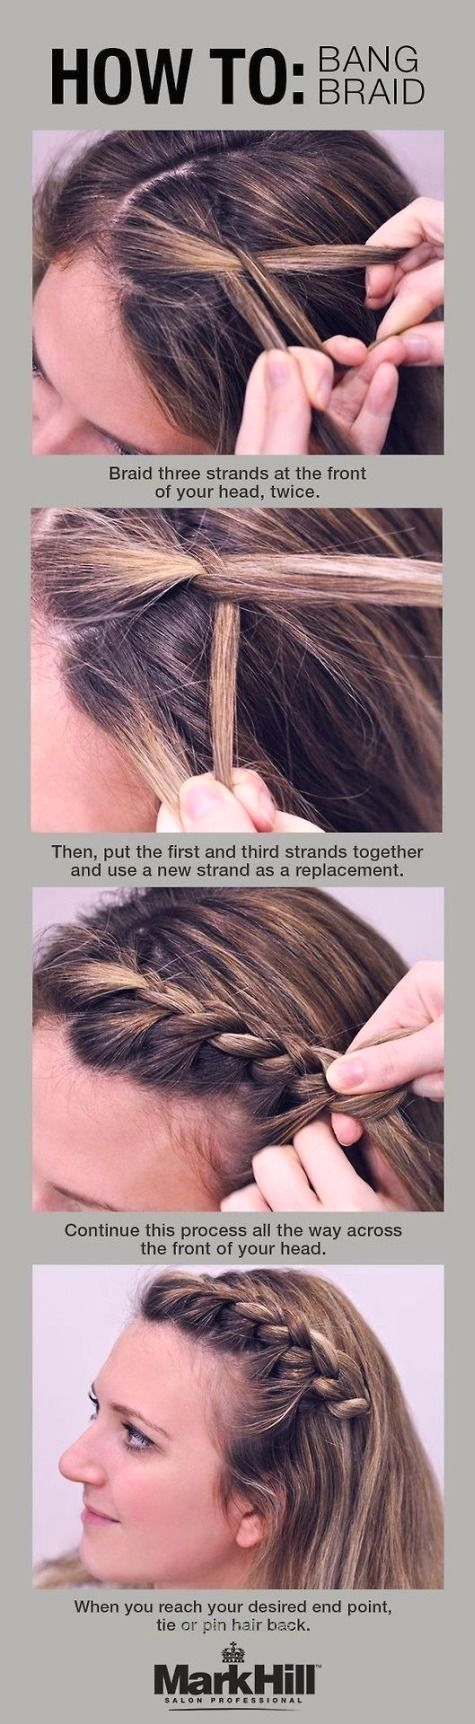 10 Hair Hacks For The Gym – IKnowHair.Com  How to braid bangs  http://www.tophaircuts.us/2017/06/10/10-hair-hacks-for-the-gym-iknowhair-com/